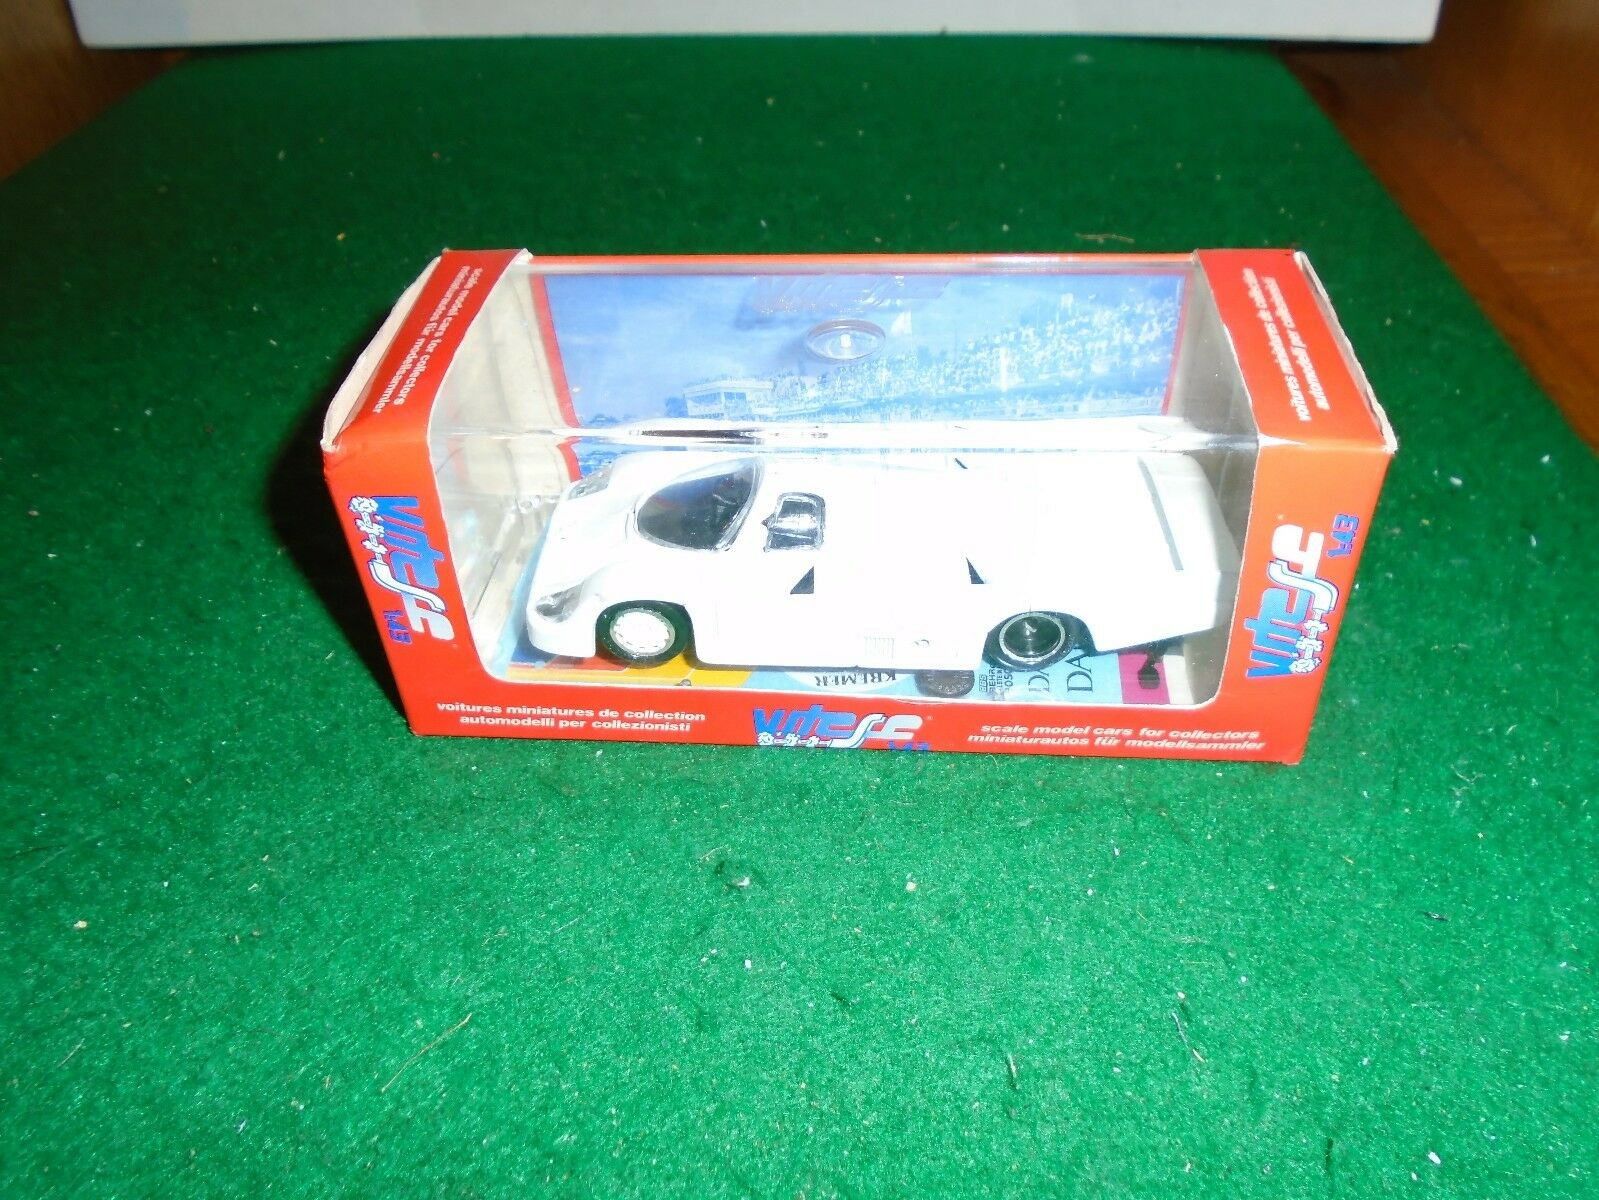 Voitures Miniatures 1984 Le mans Porsche 956 Not Decorated in 1 43 scale